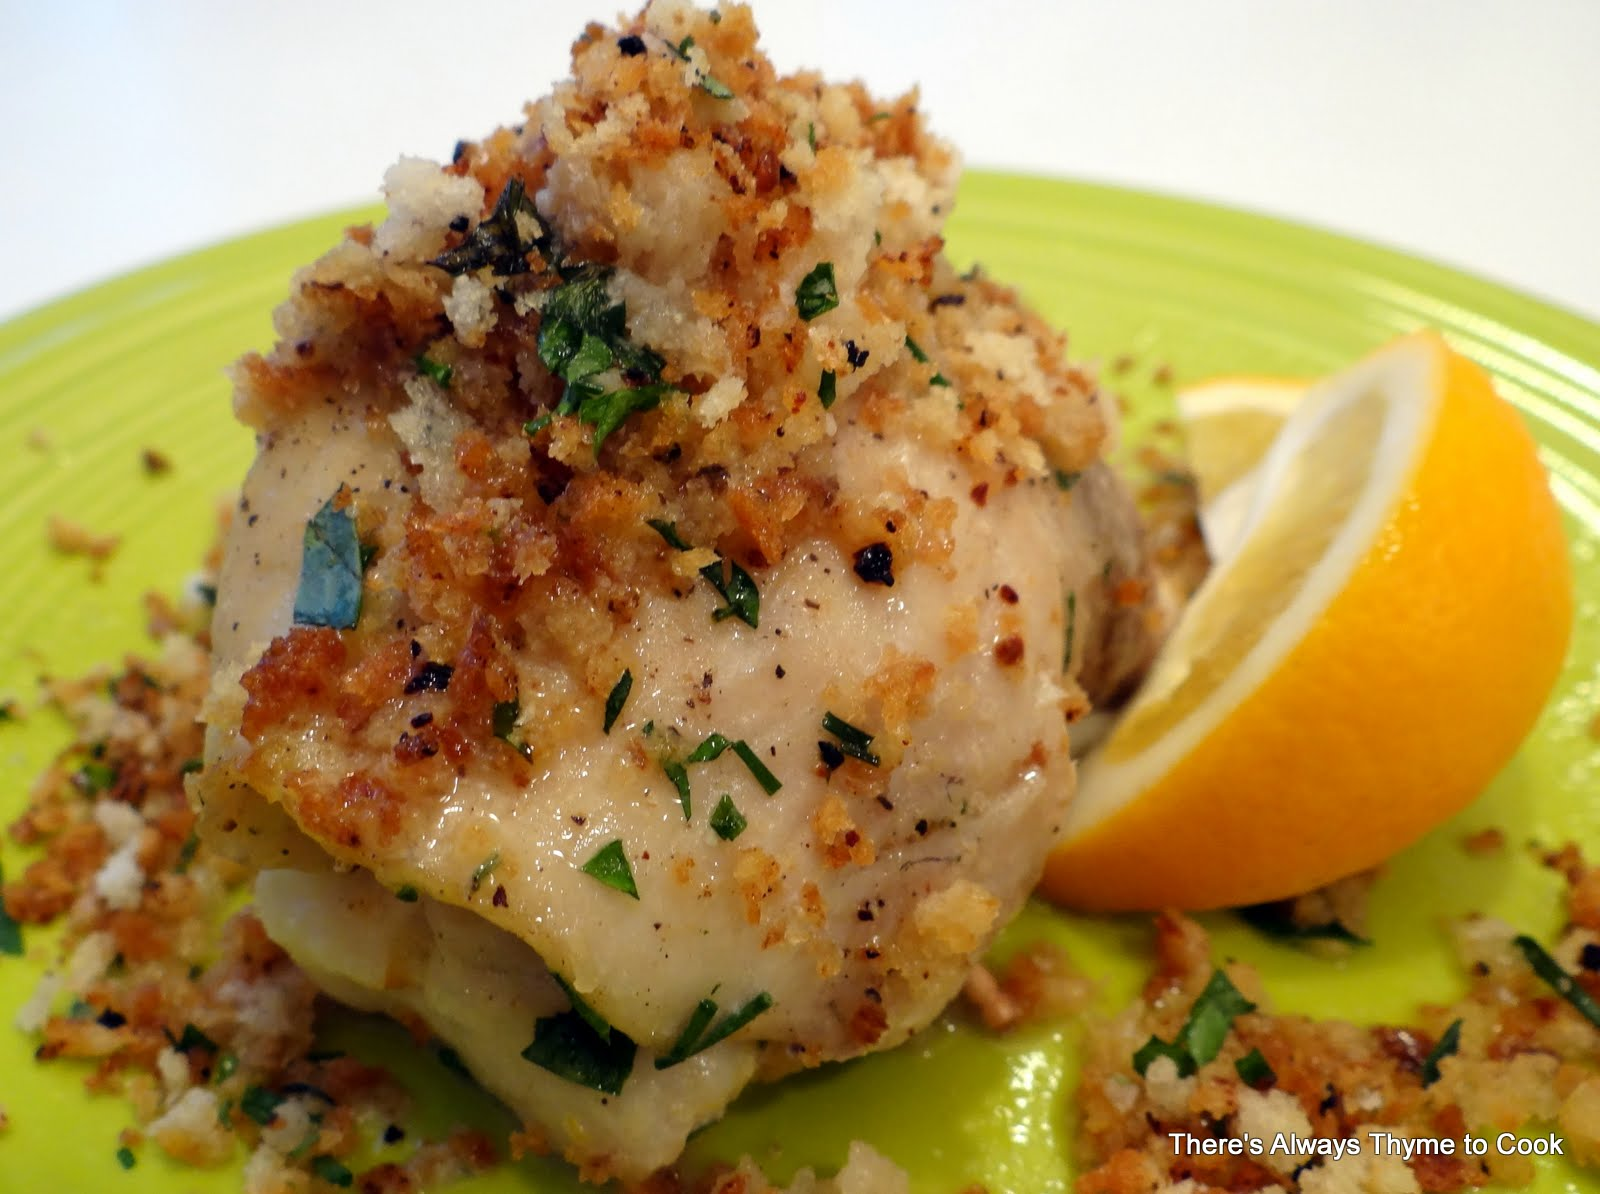 bread savory bread pudding baked fish with savory bread crumbs ...